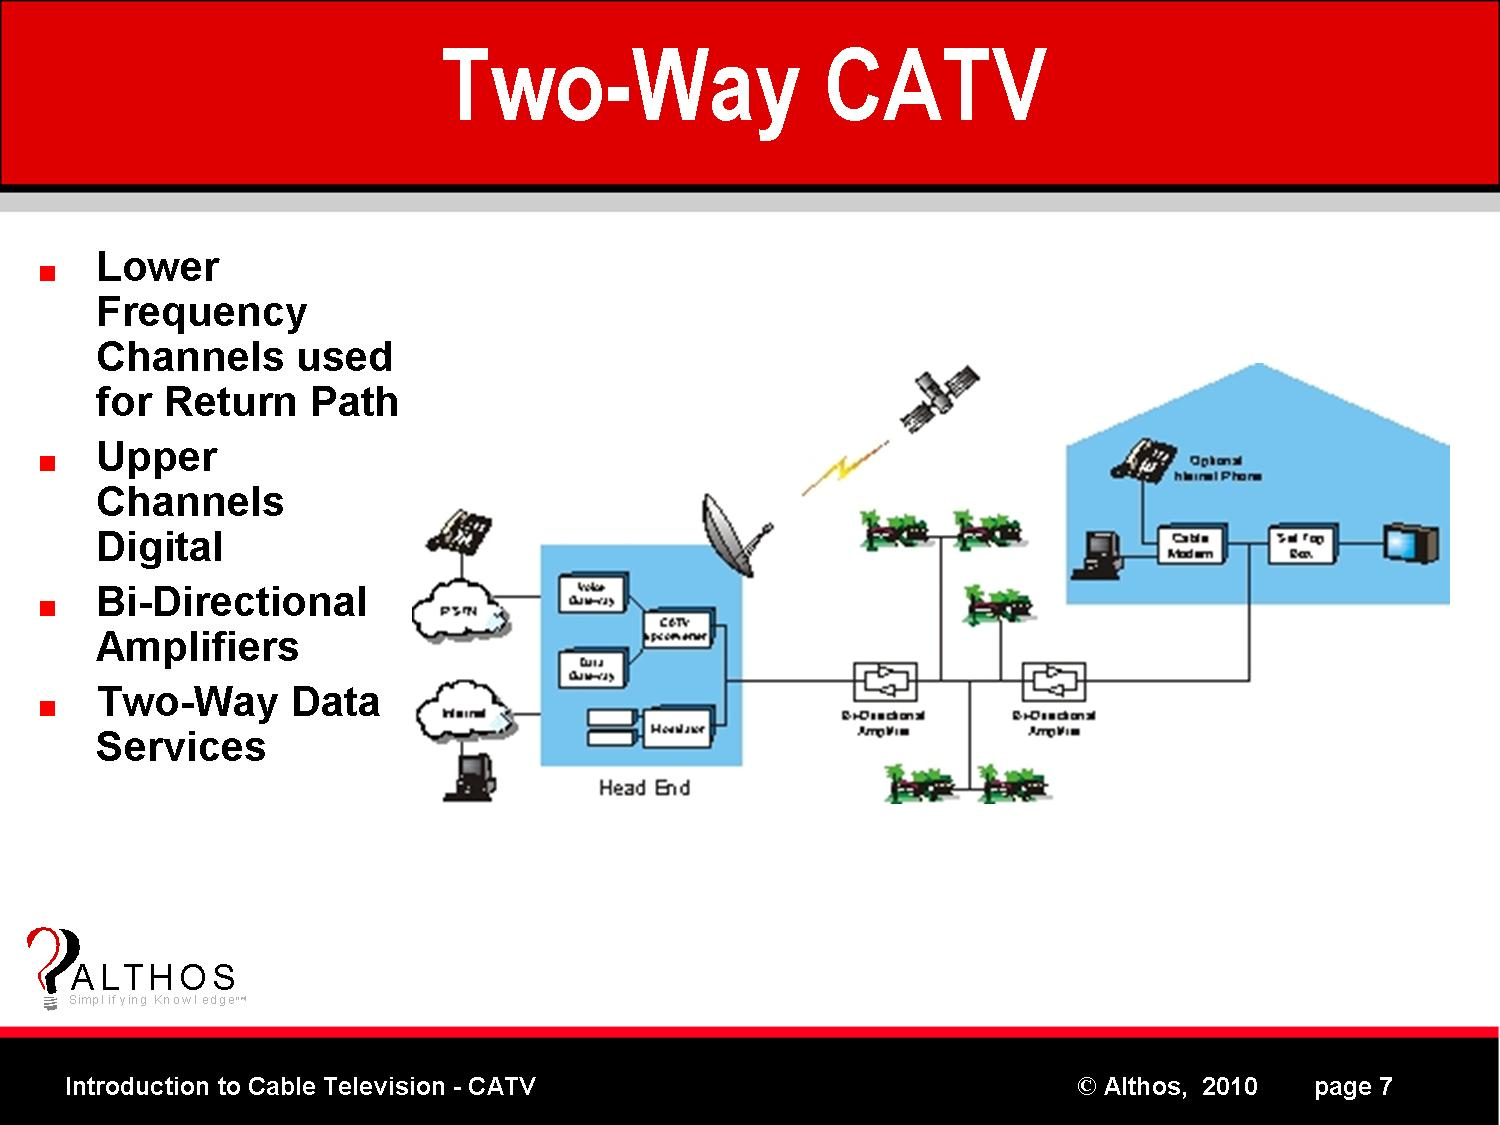 Introduction To CATV Two Way Cable TV System